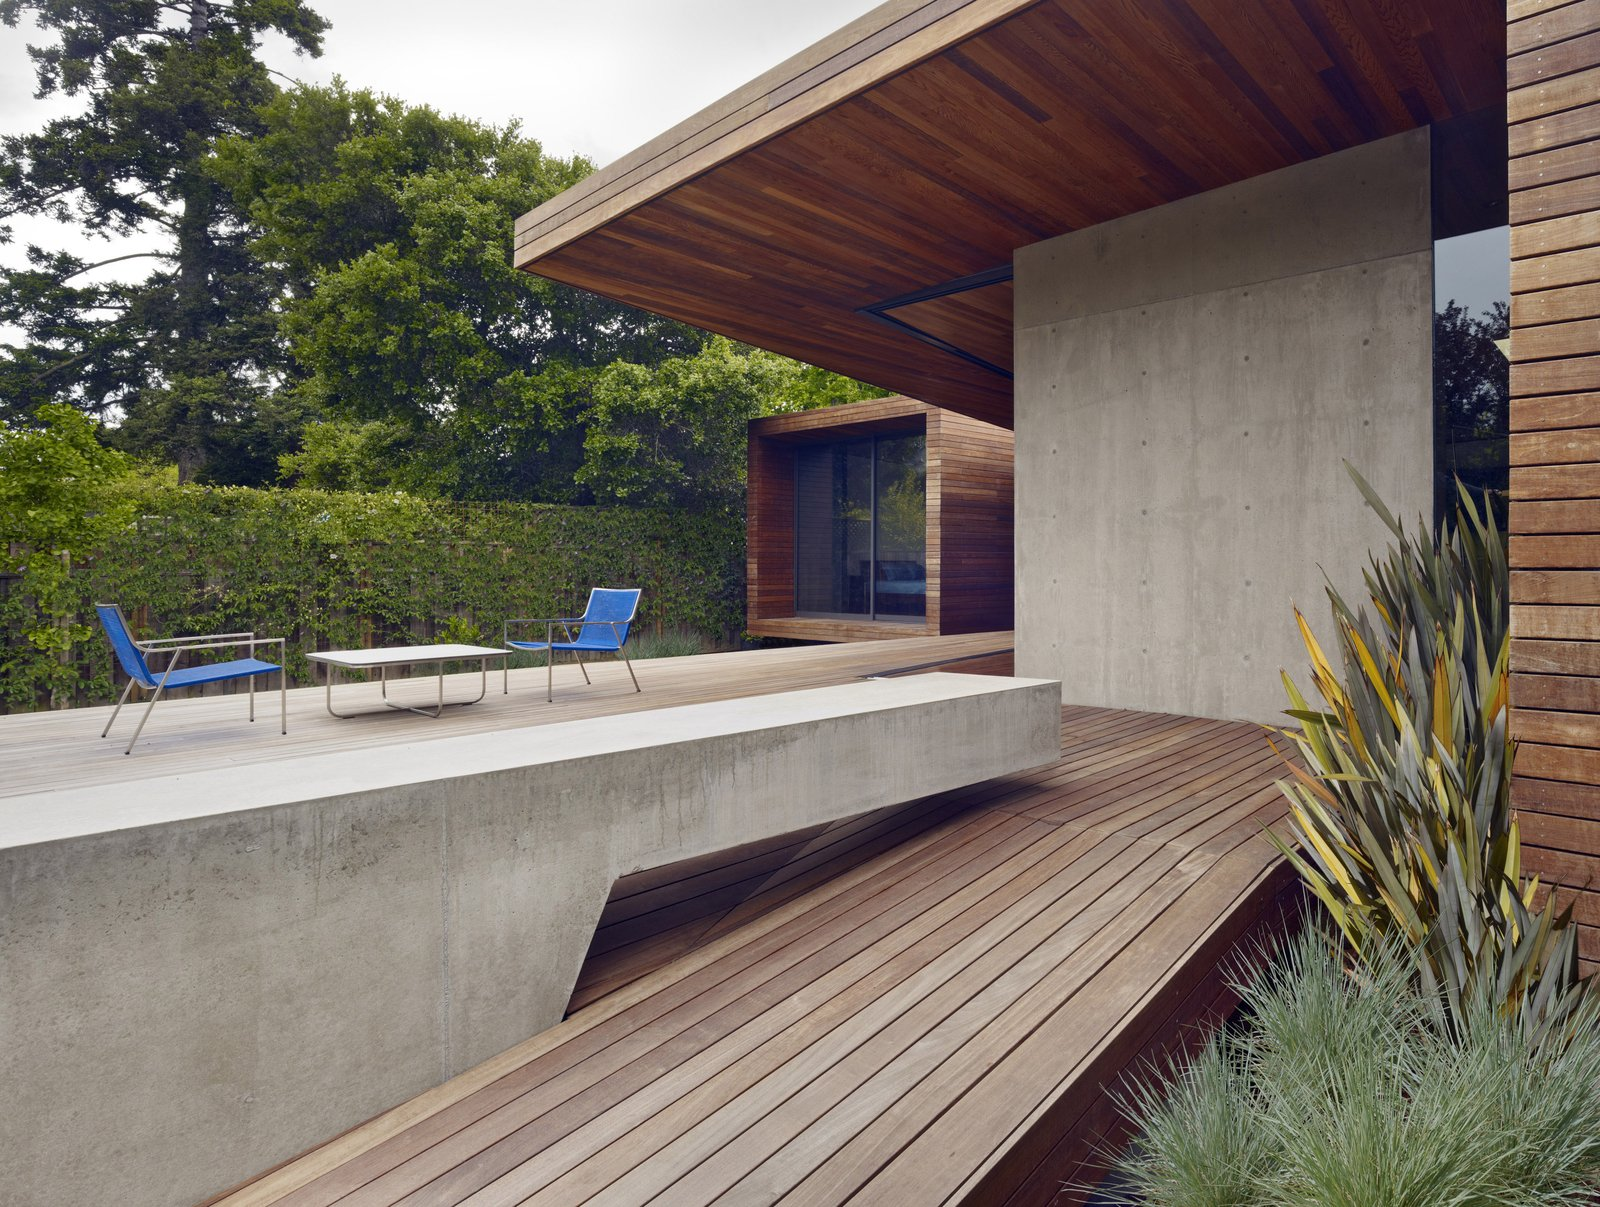 Outdoor, Large Patio, Porch, Deck, Wood Patio, Porch, Deck, Concrete Patio, Porch, Deck, and Shrubs A spacious deck was created as part of the addition. A cantilevered concrete bench stretches out to the rear garden and complements the adjacent concrete wall.  Concrete